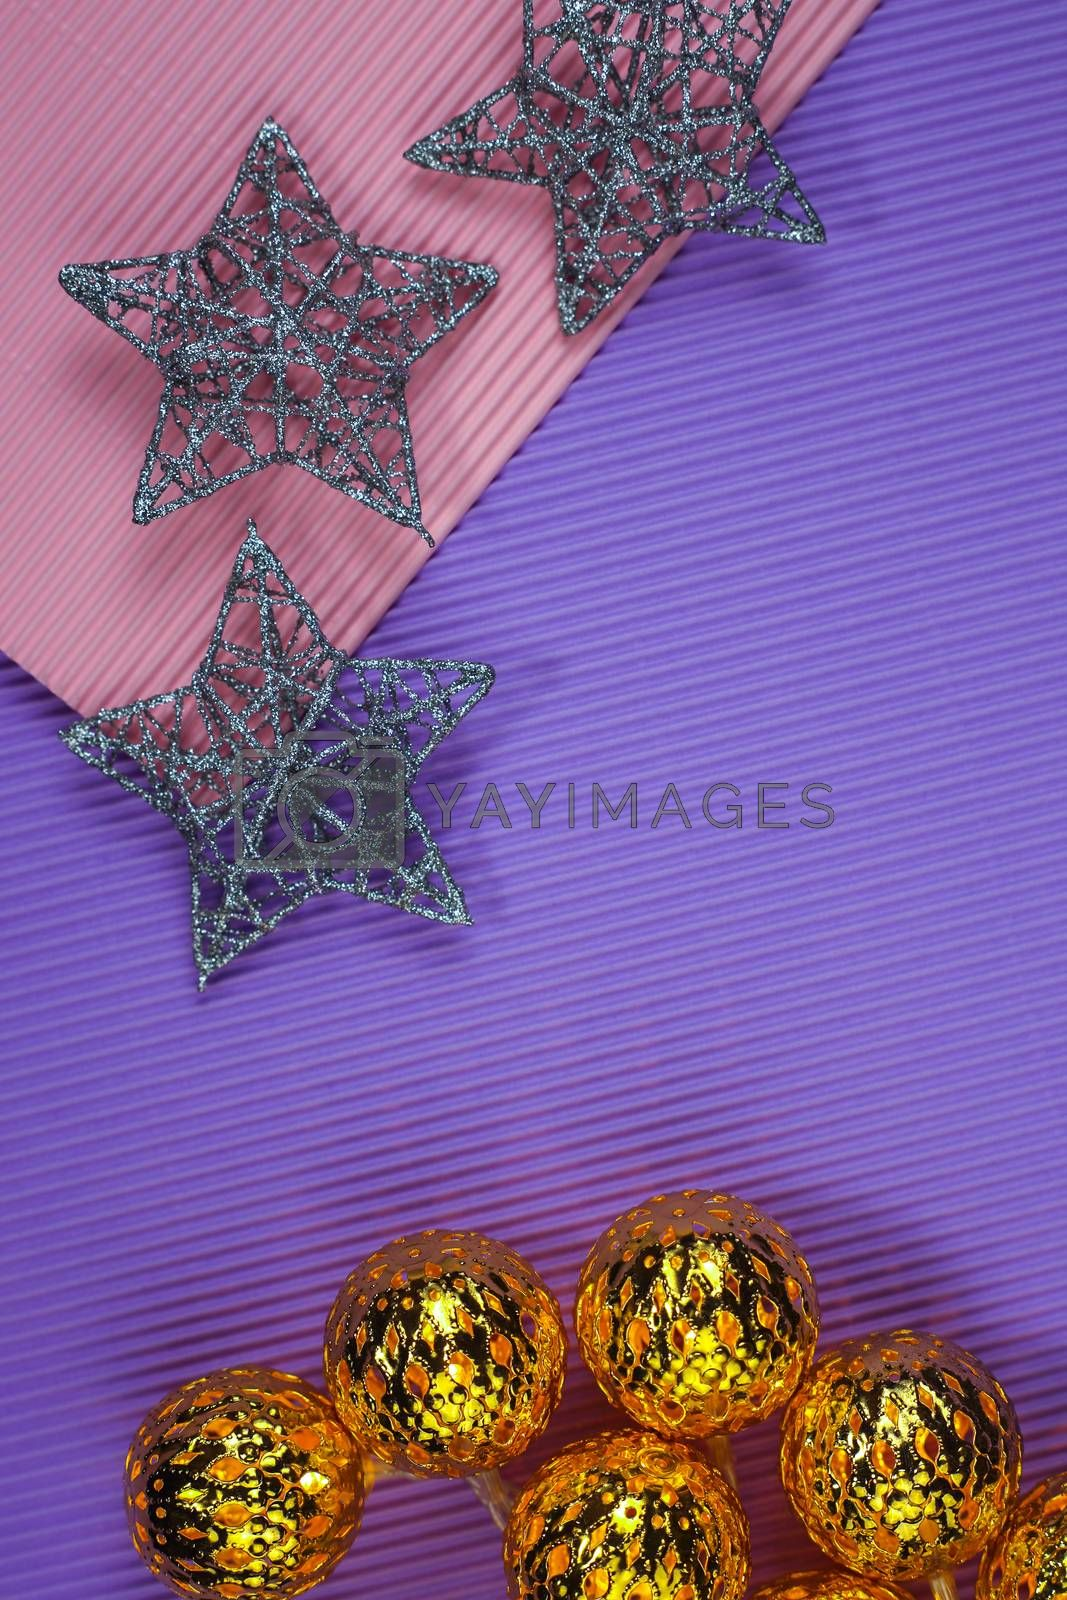 Creative design of Christmas decorations on color paper background. Garland. New Year. Flat lay, top view, copy space.